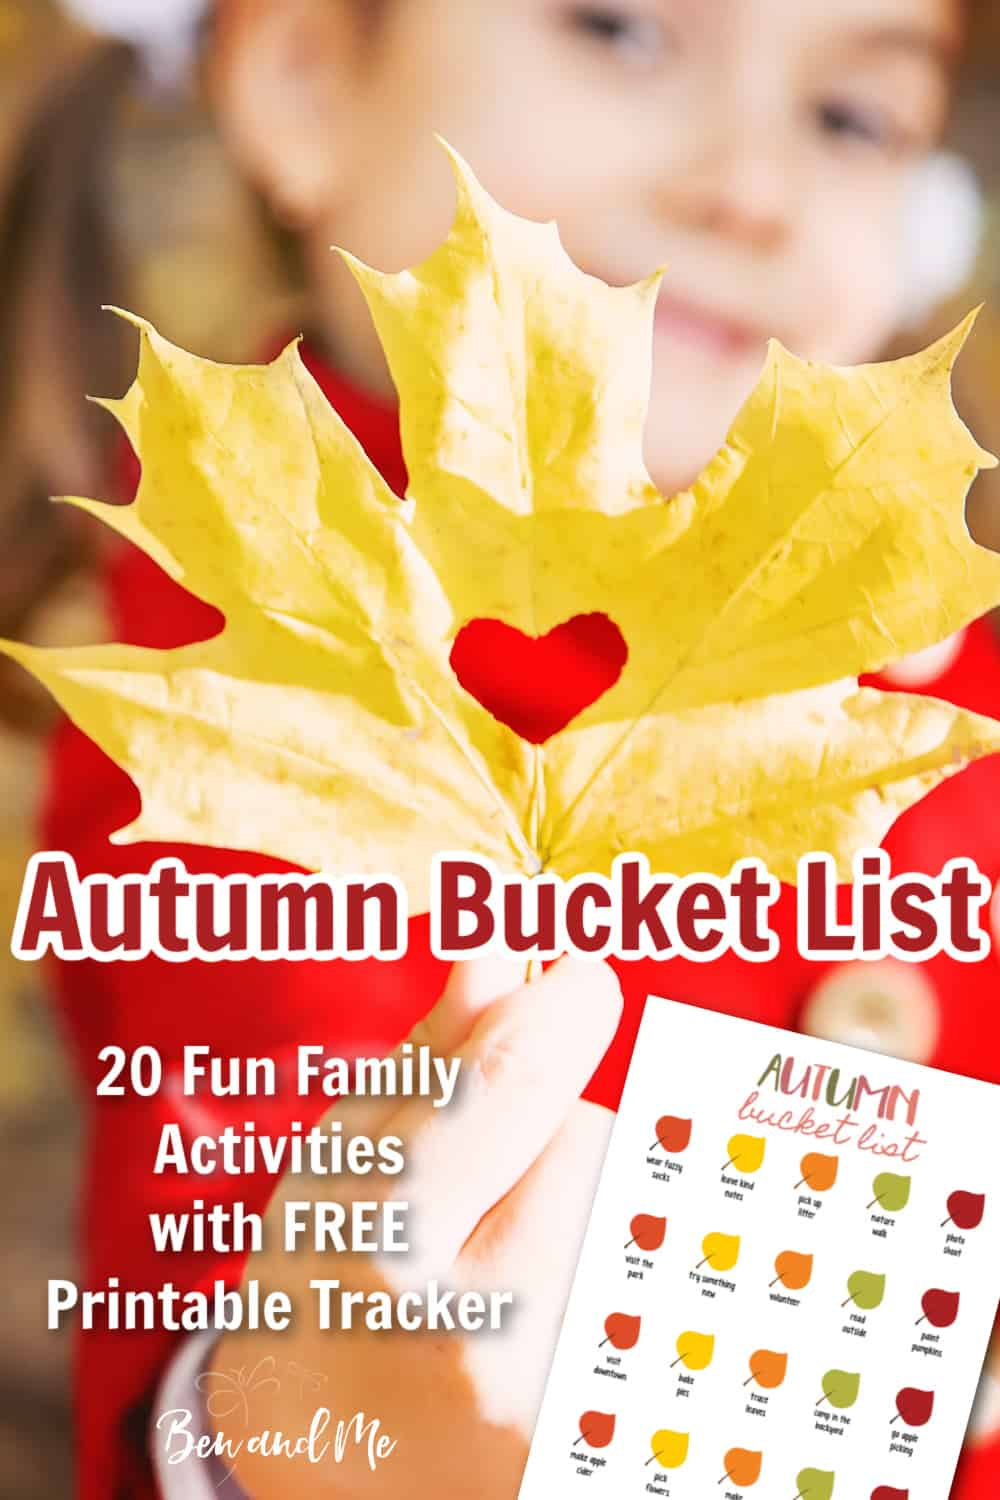 Download your free printable and get started with this Fall Bucket List. Includes 20 fun ideas for families. Print the list, make a plan, gather supplies, and get started! #fallbucketlist #autumnbucketlist #familyfun #familyactivities #itsfallyall